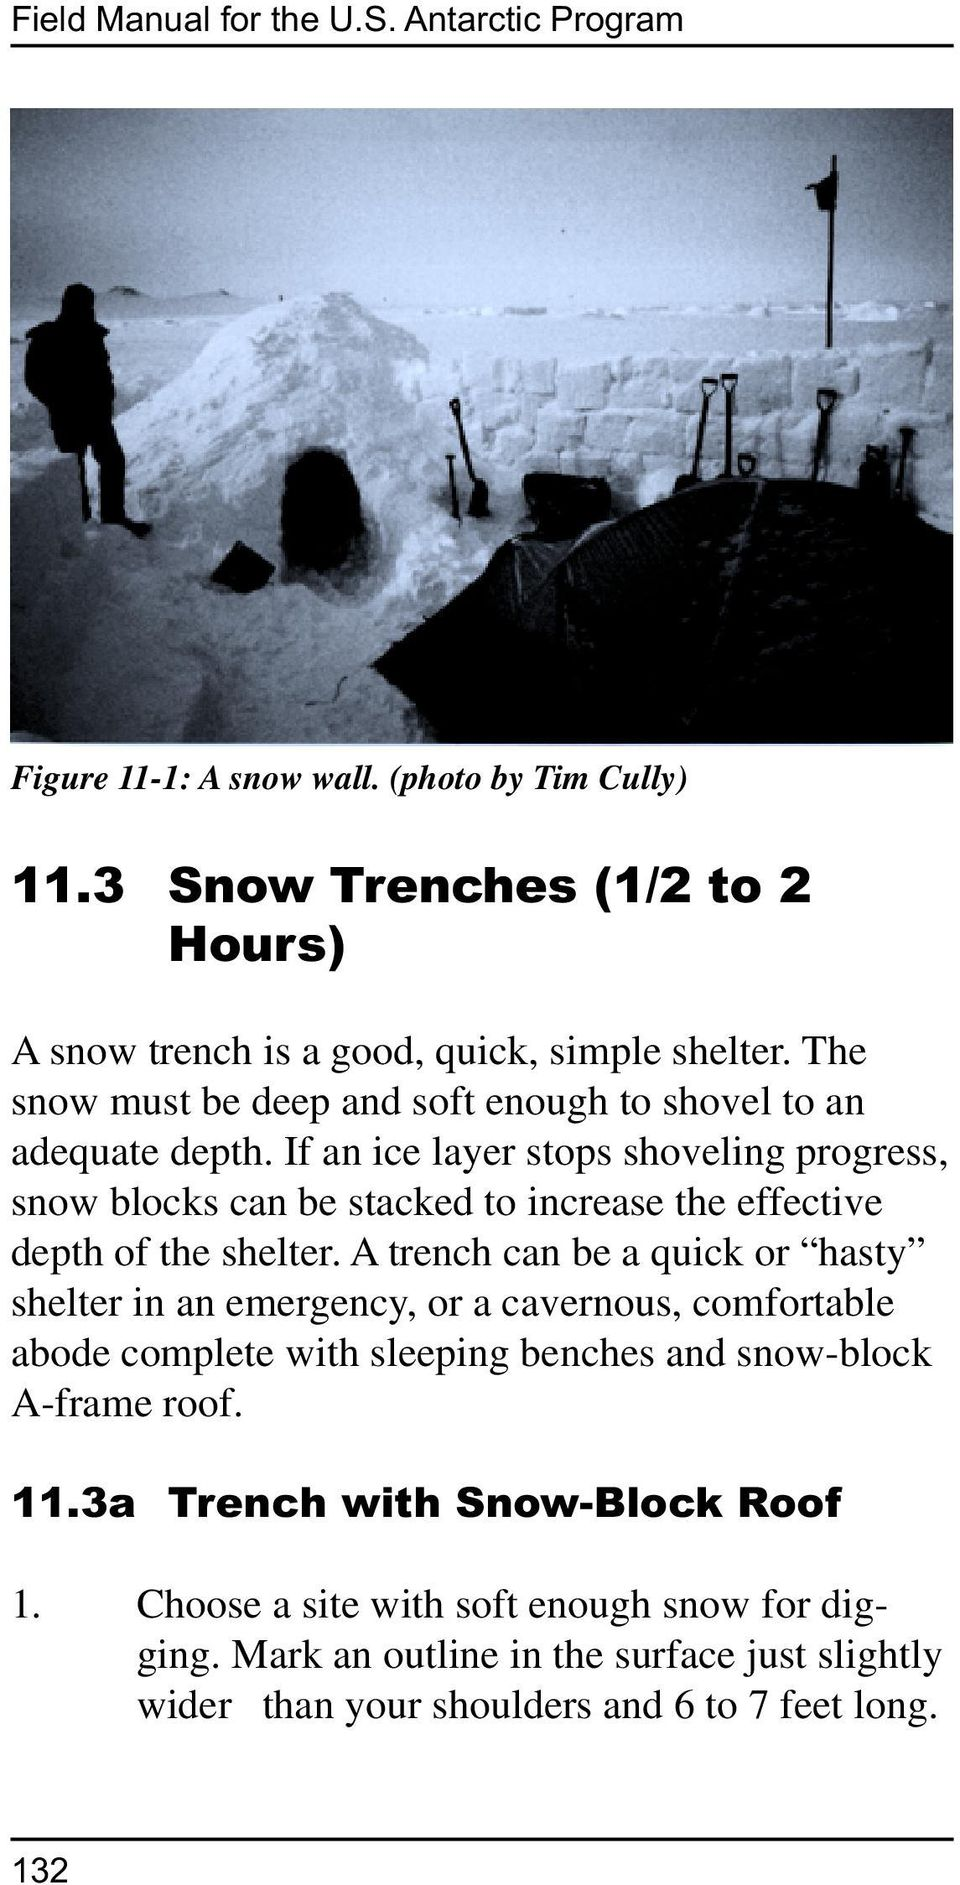 If an ice layer stops shoveling progress, snow blocks can be stacked to increase the effective depth of the shelter.